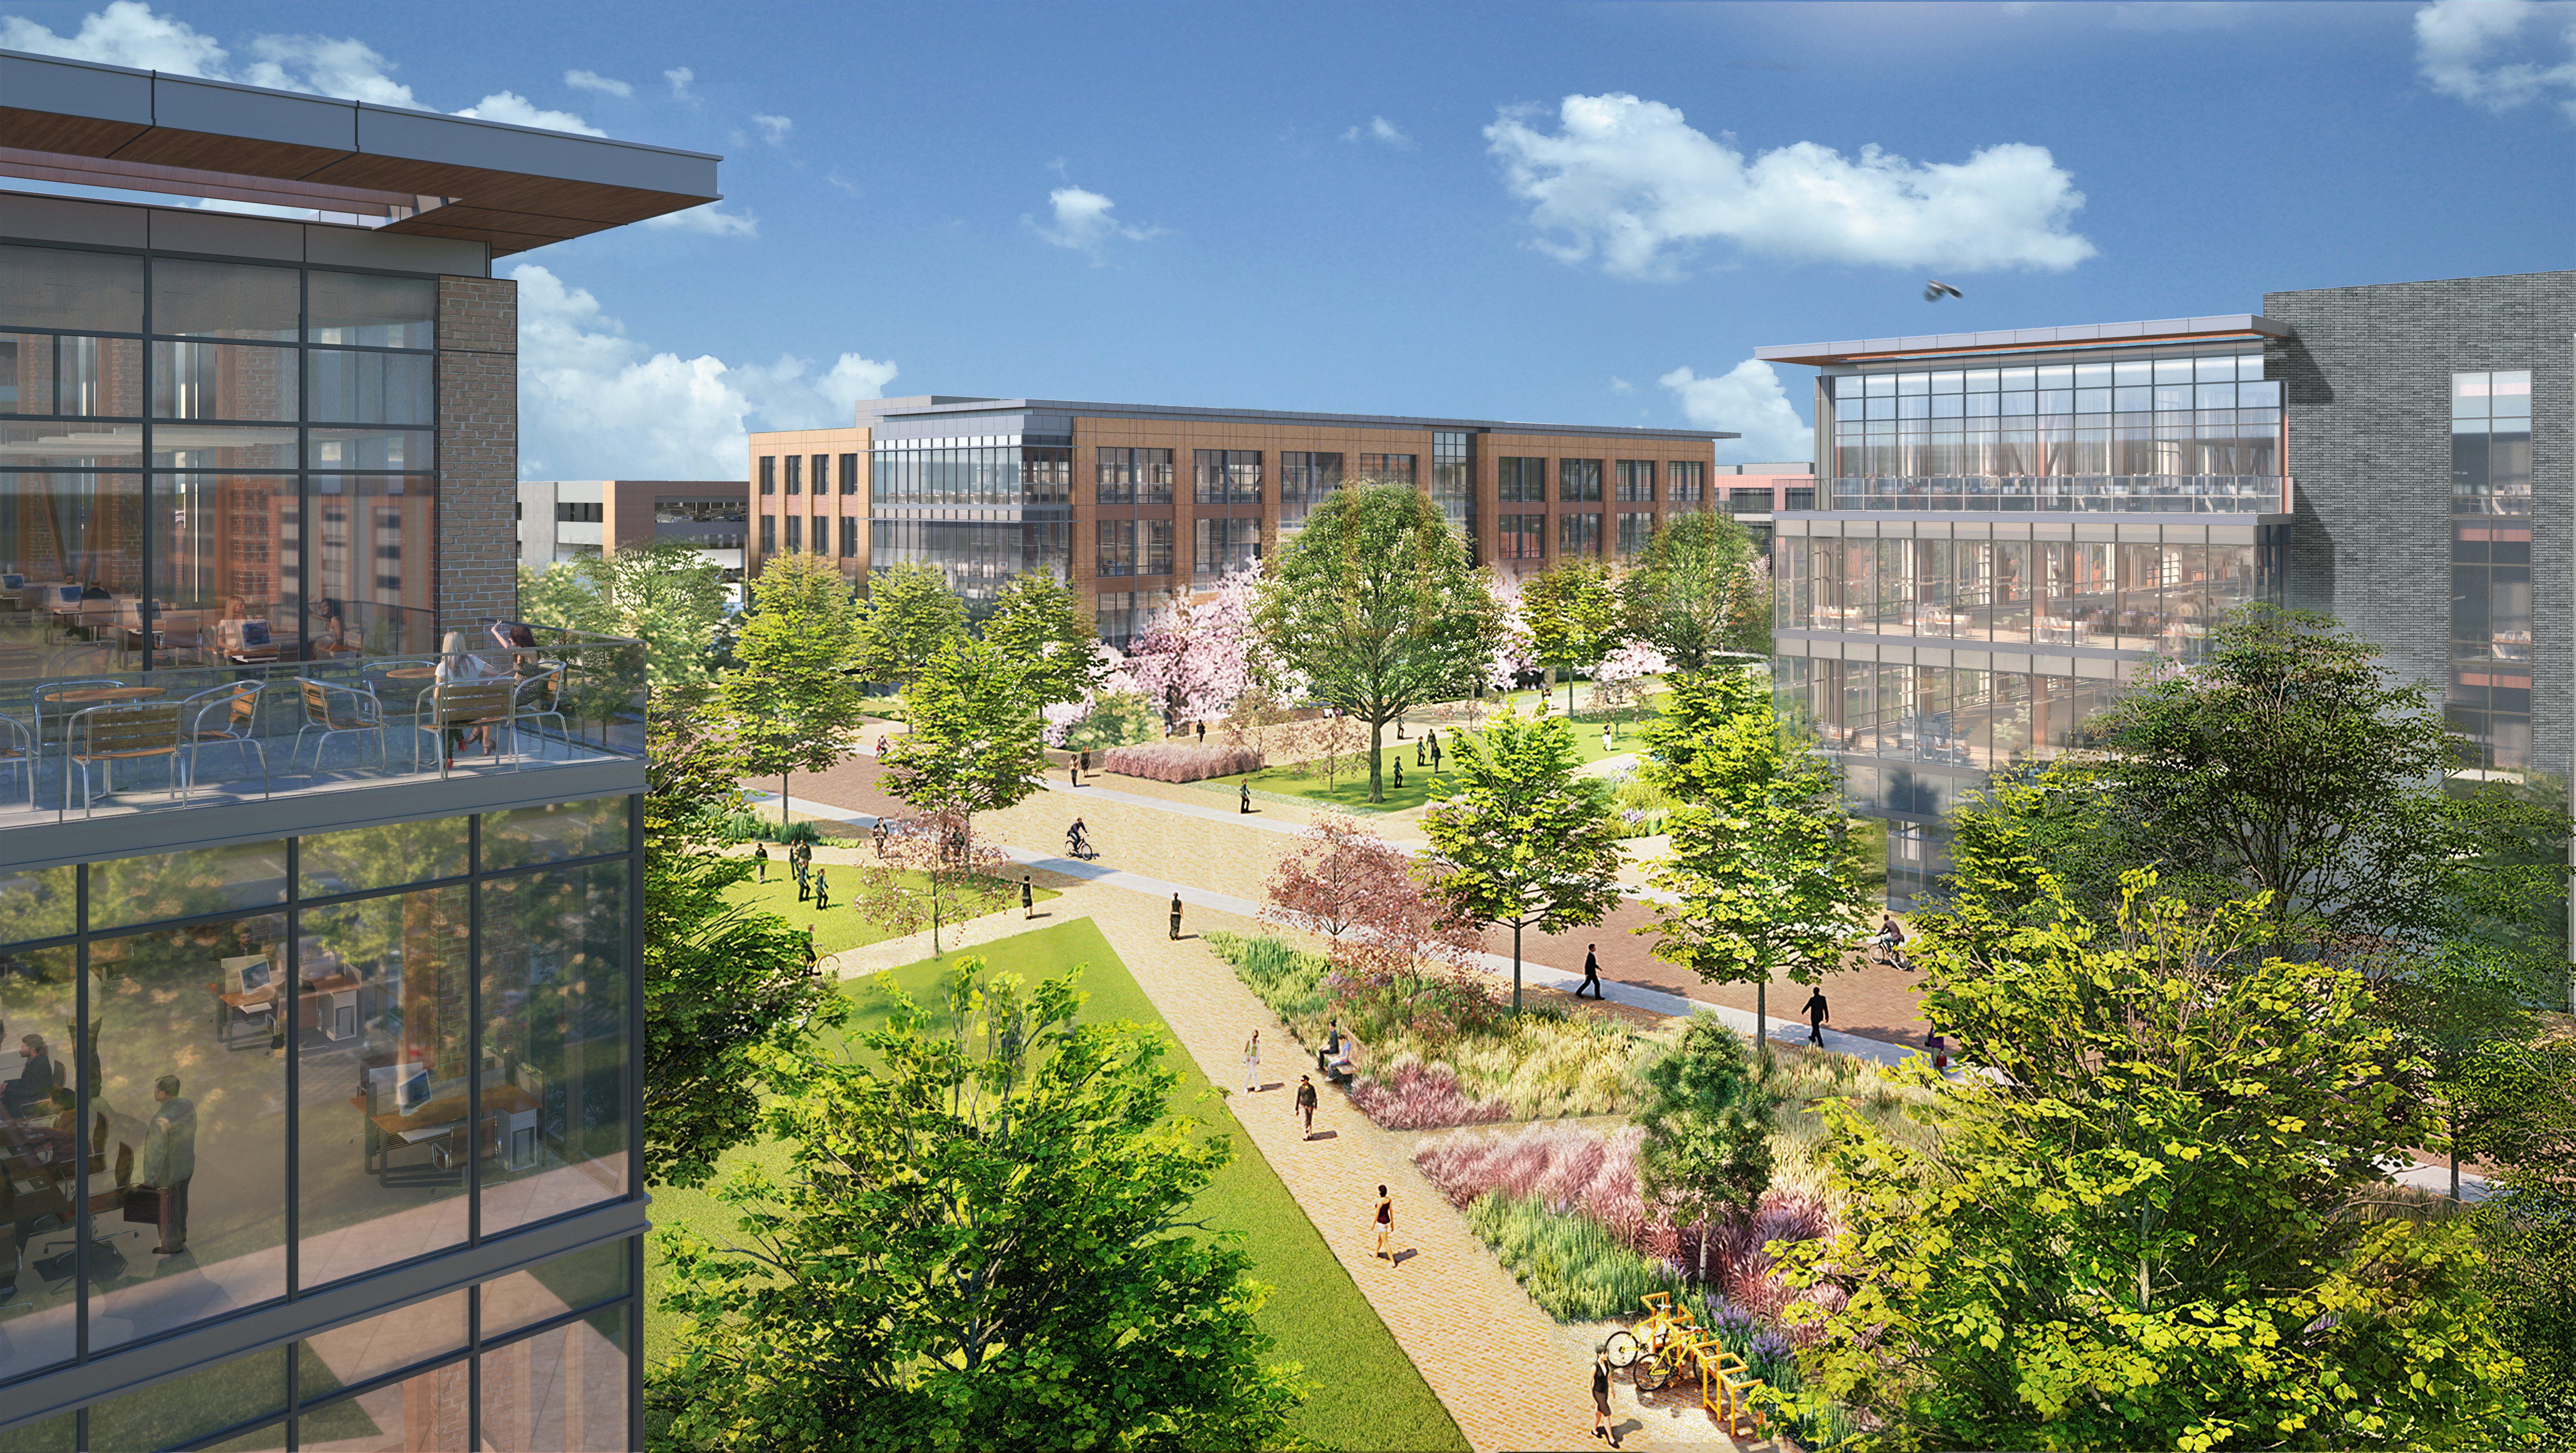 A rendering of a high-tech office campus with walkable corridors and green space.